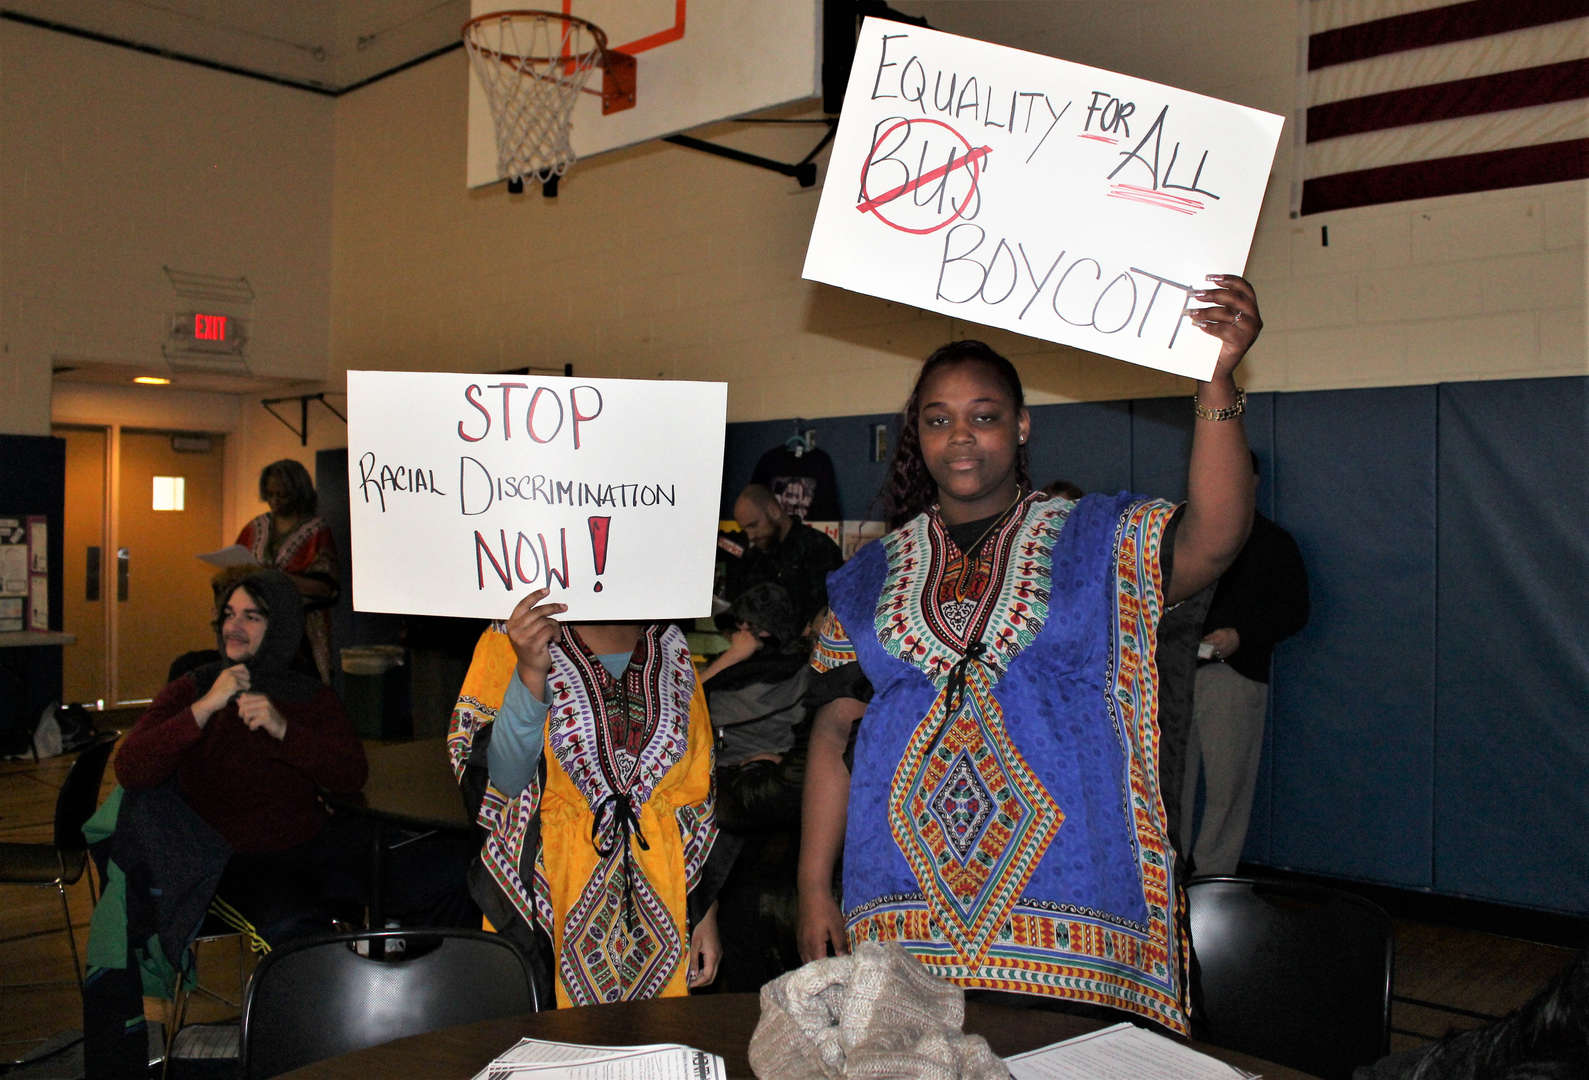 Two female students hold up protest signs.